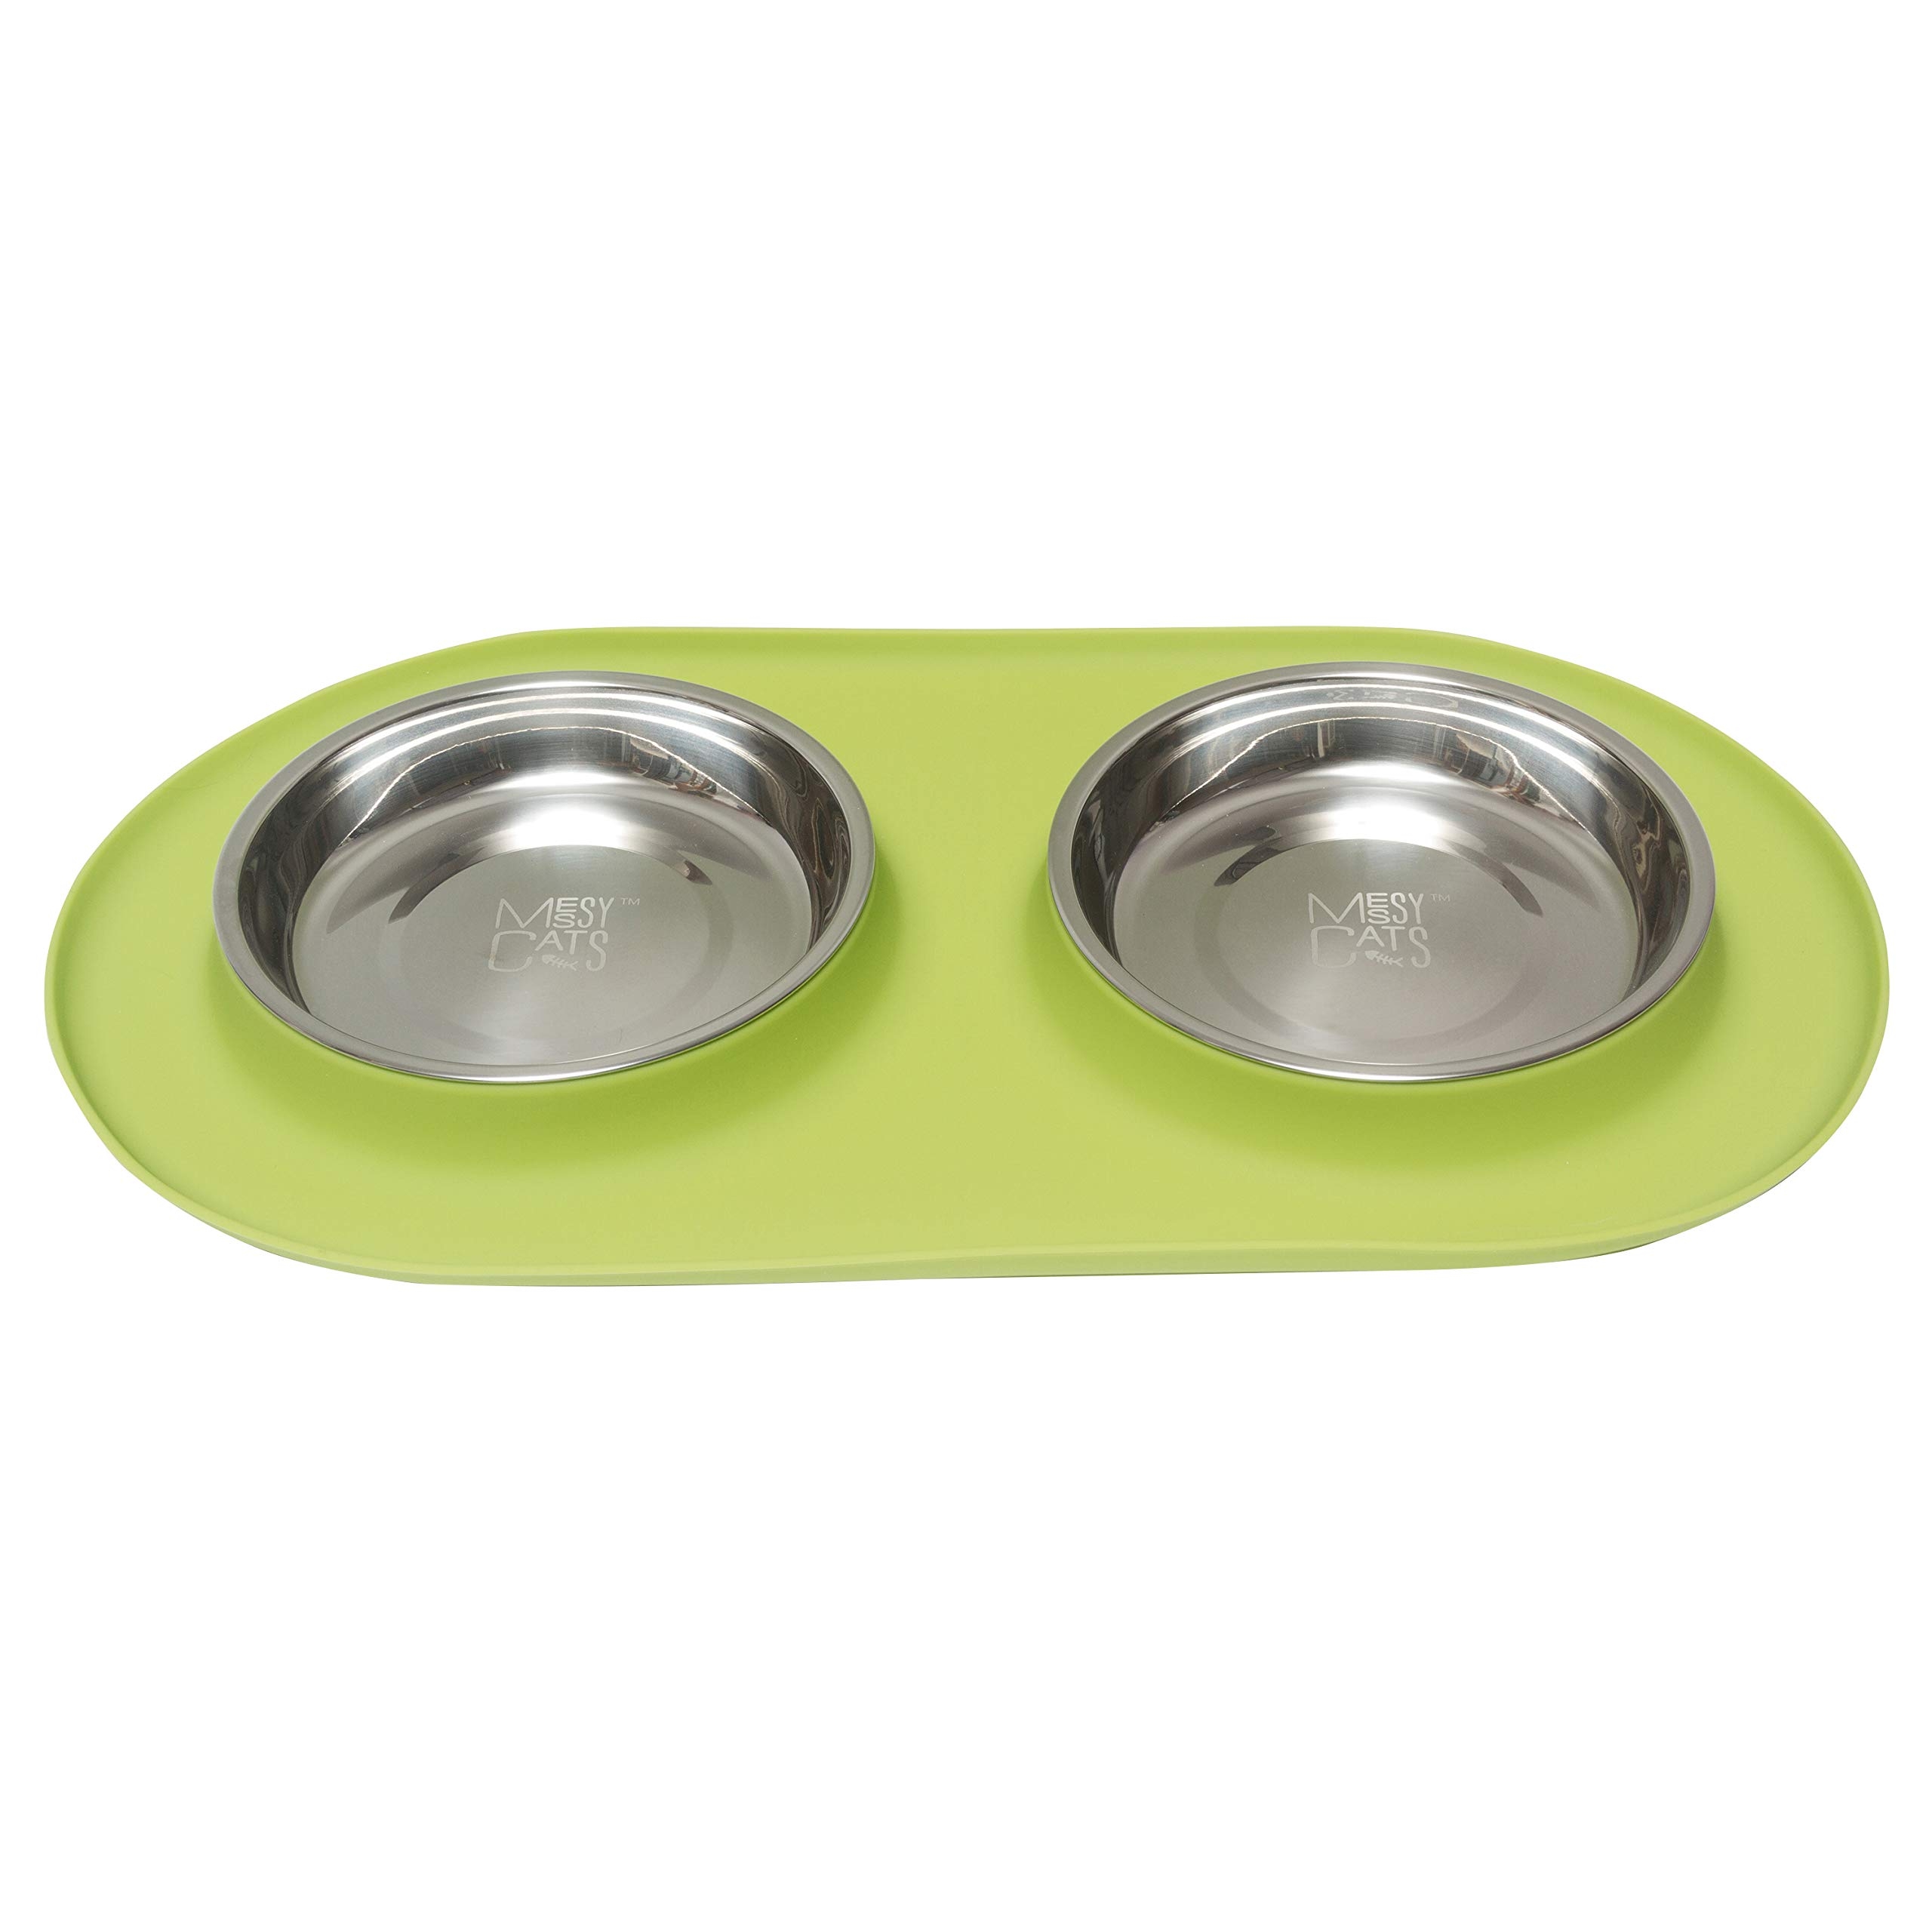 Messy Cats Stainless Steel Cat Double Feeder with Non-Slip Silicone Base Cat Bowl Image